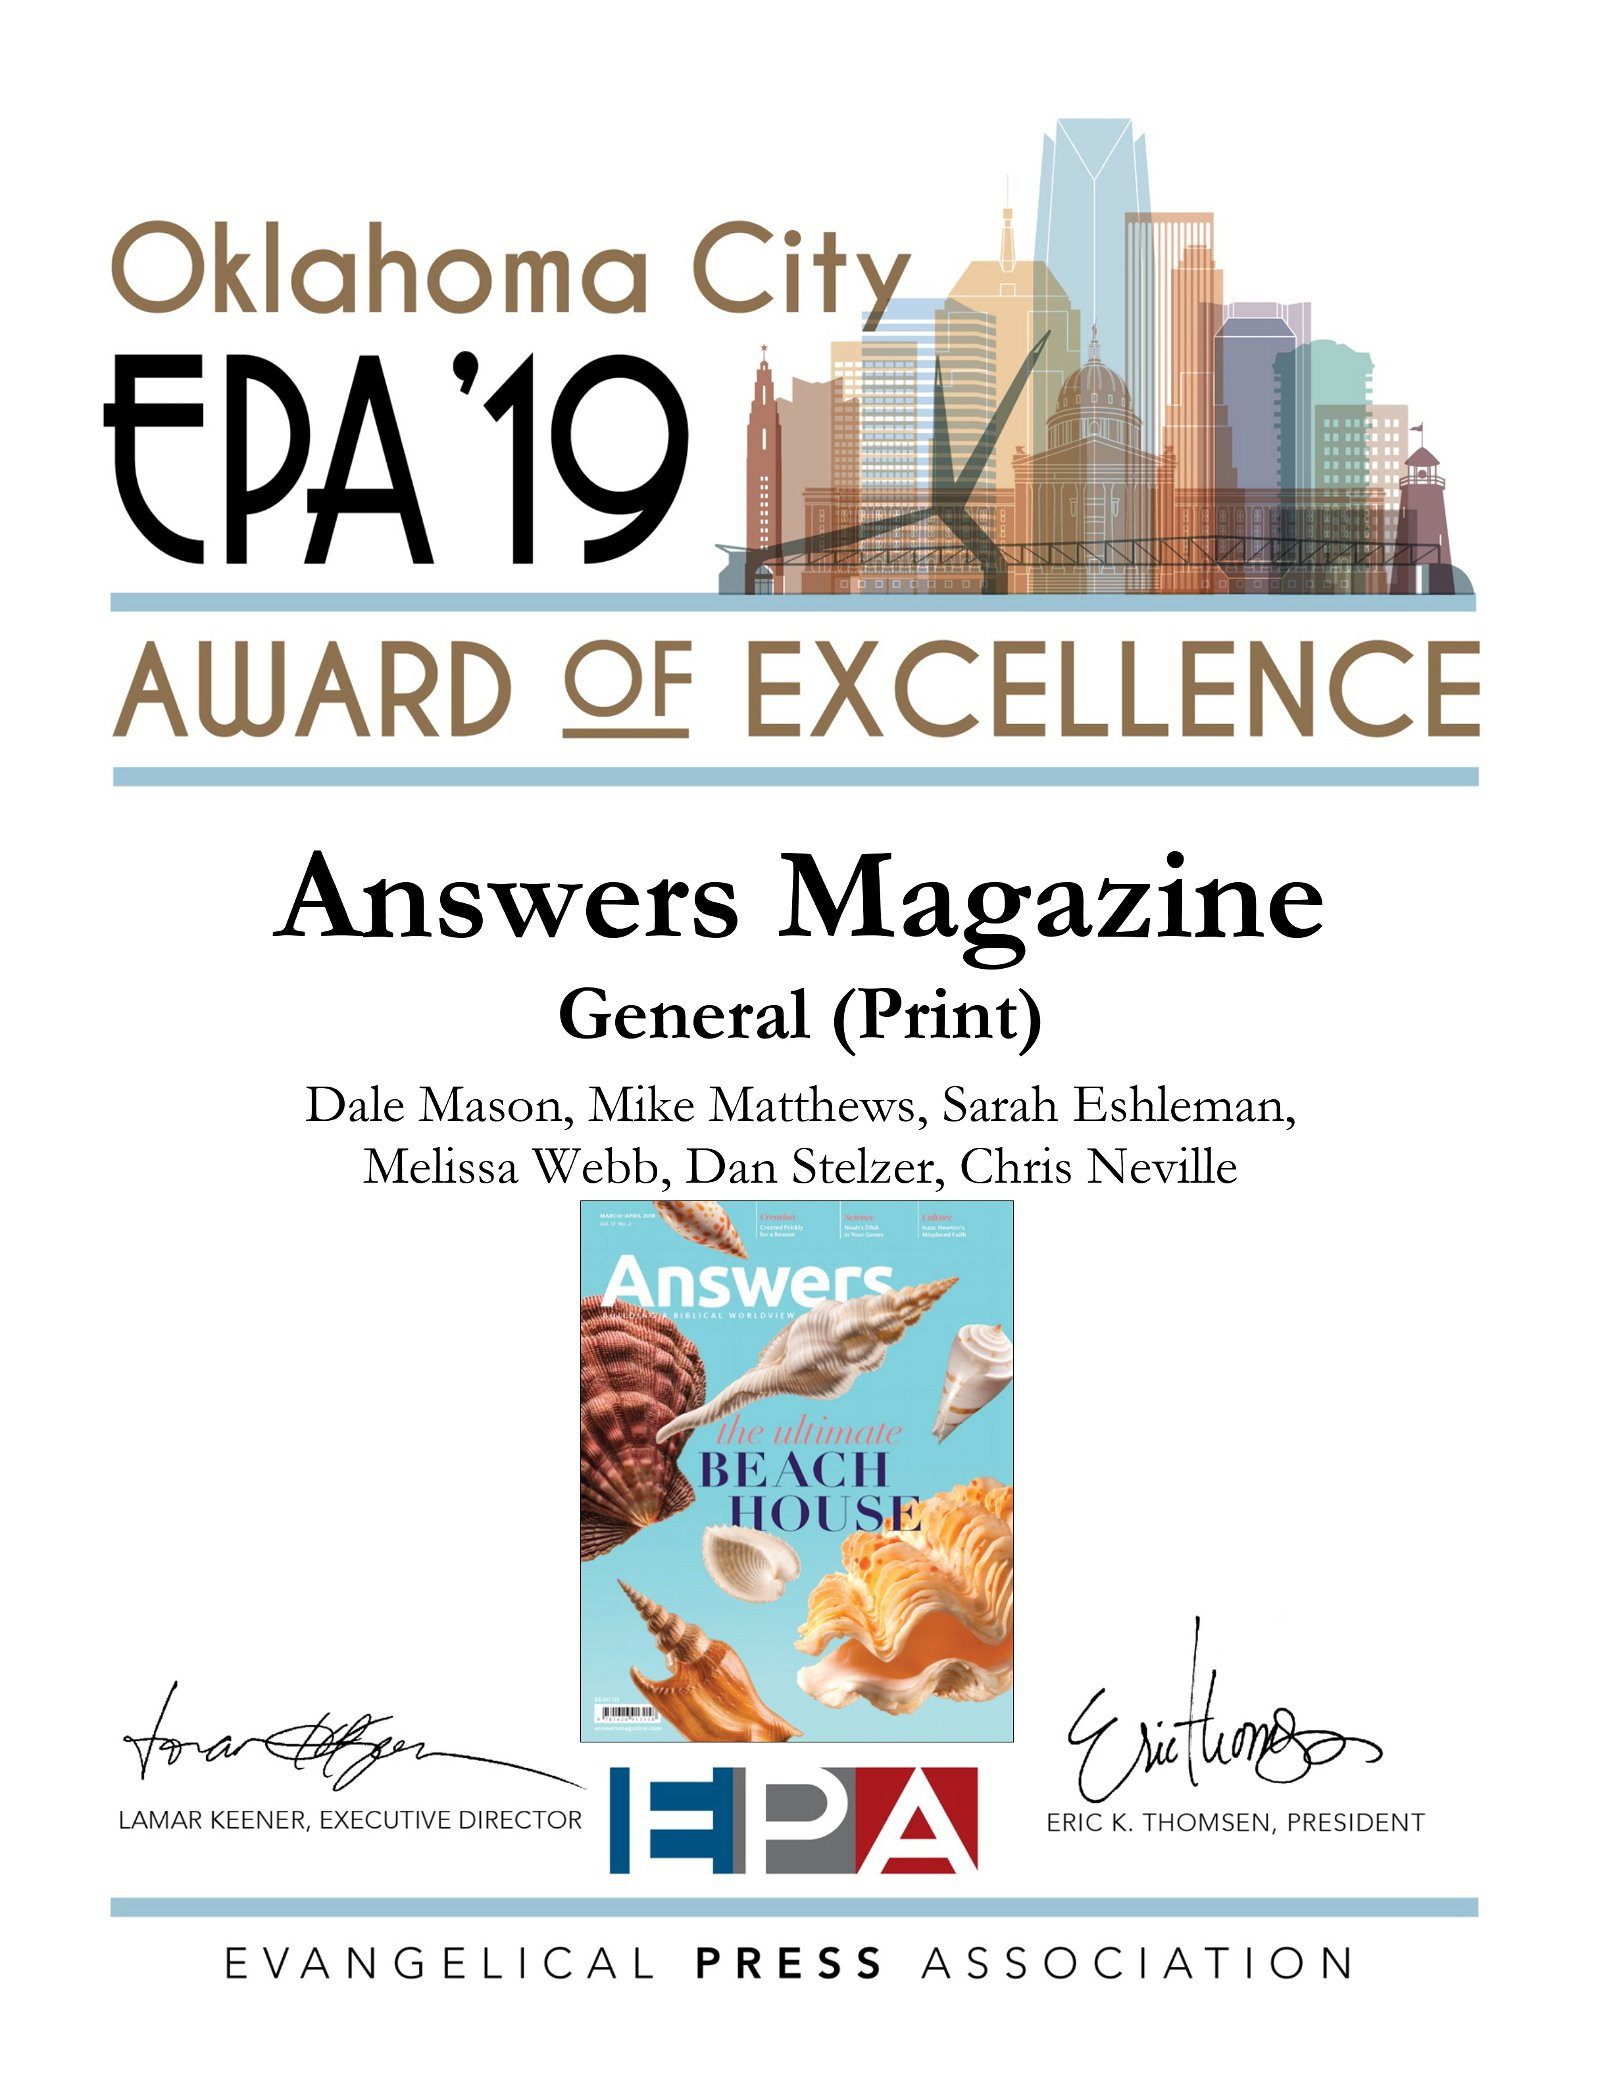 Answers Magazine Award of Excellence